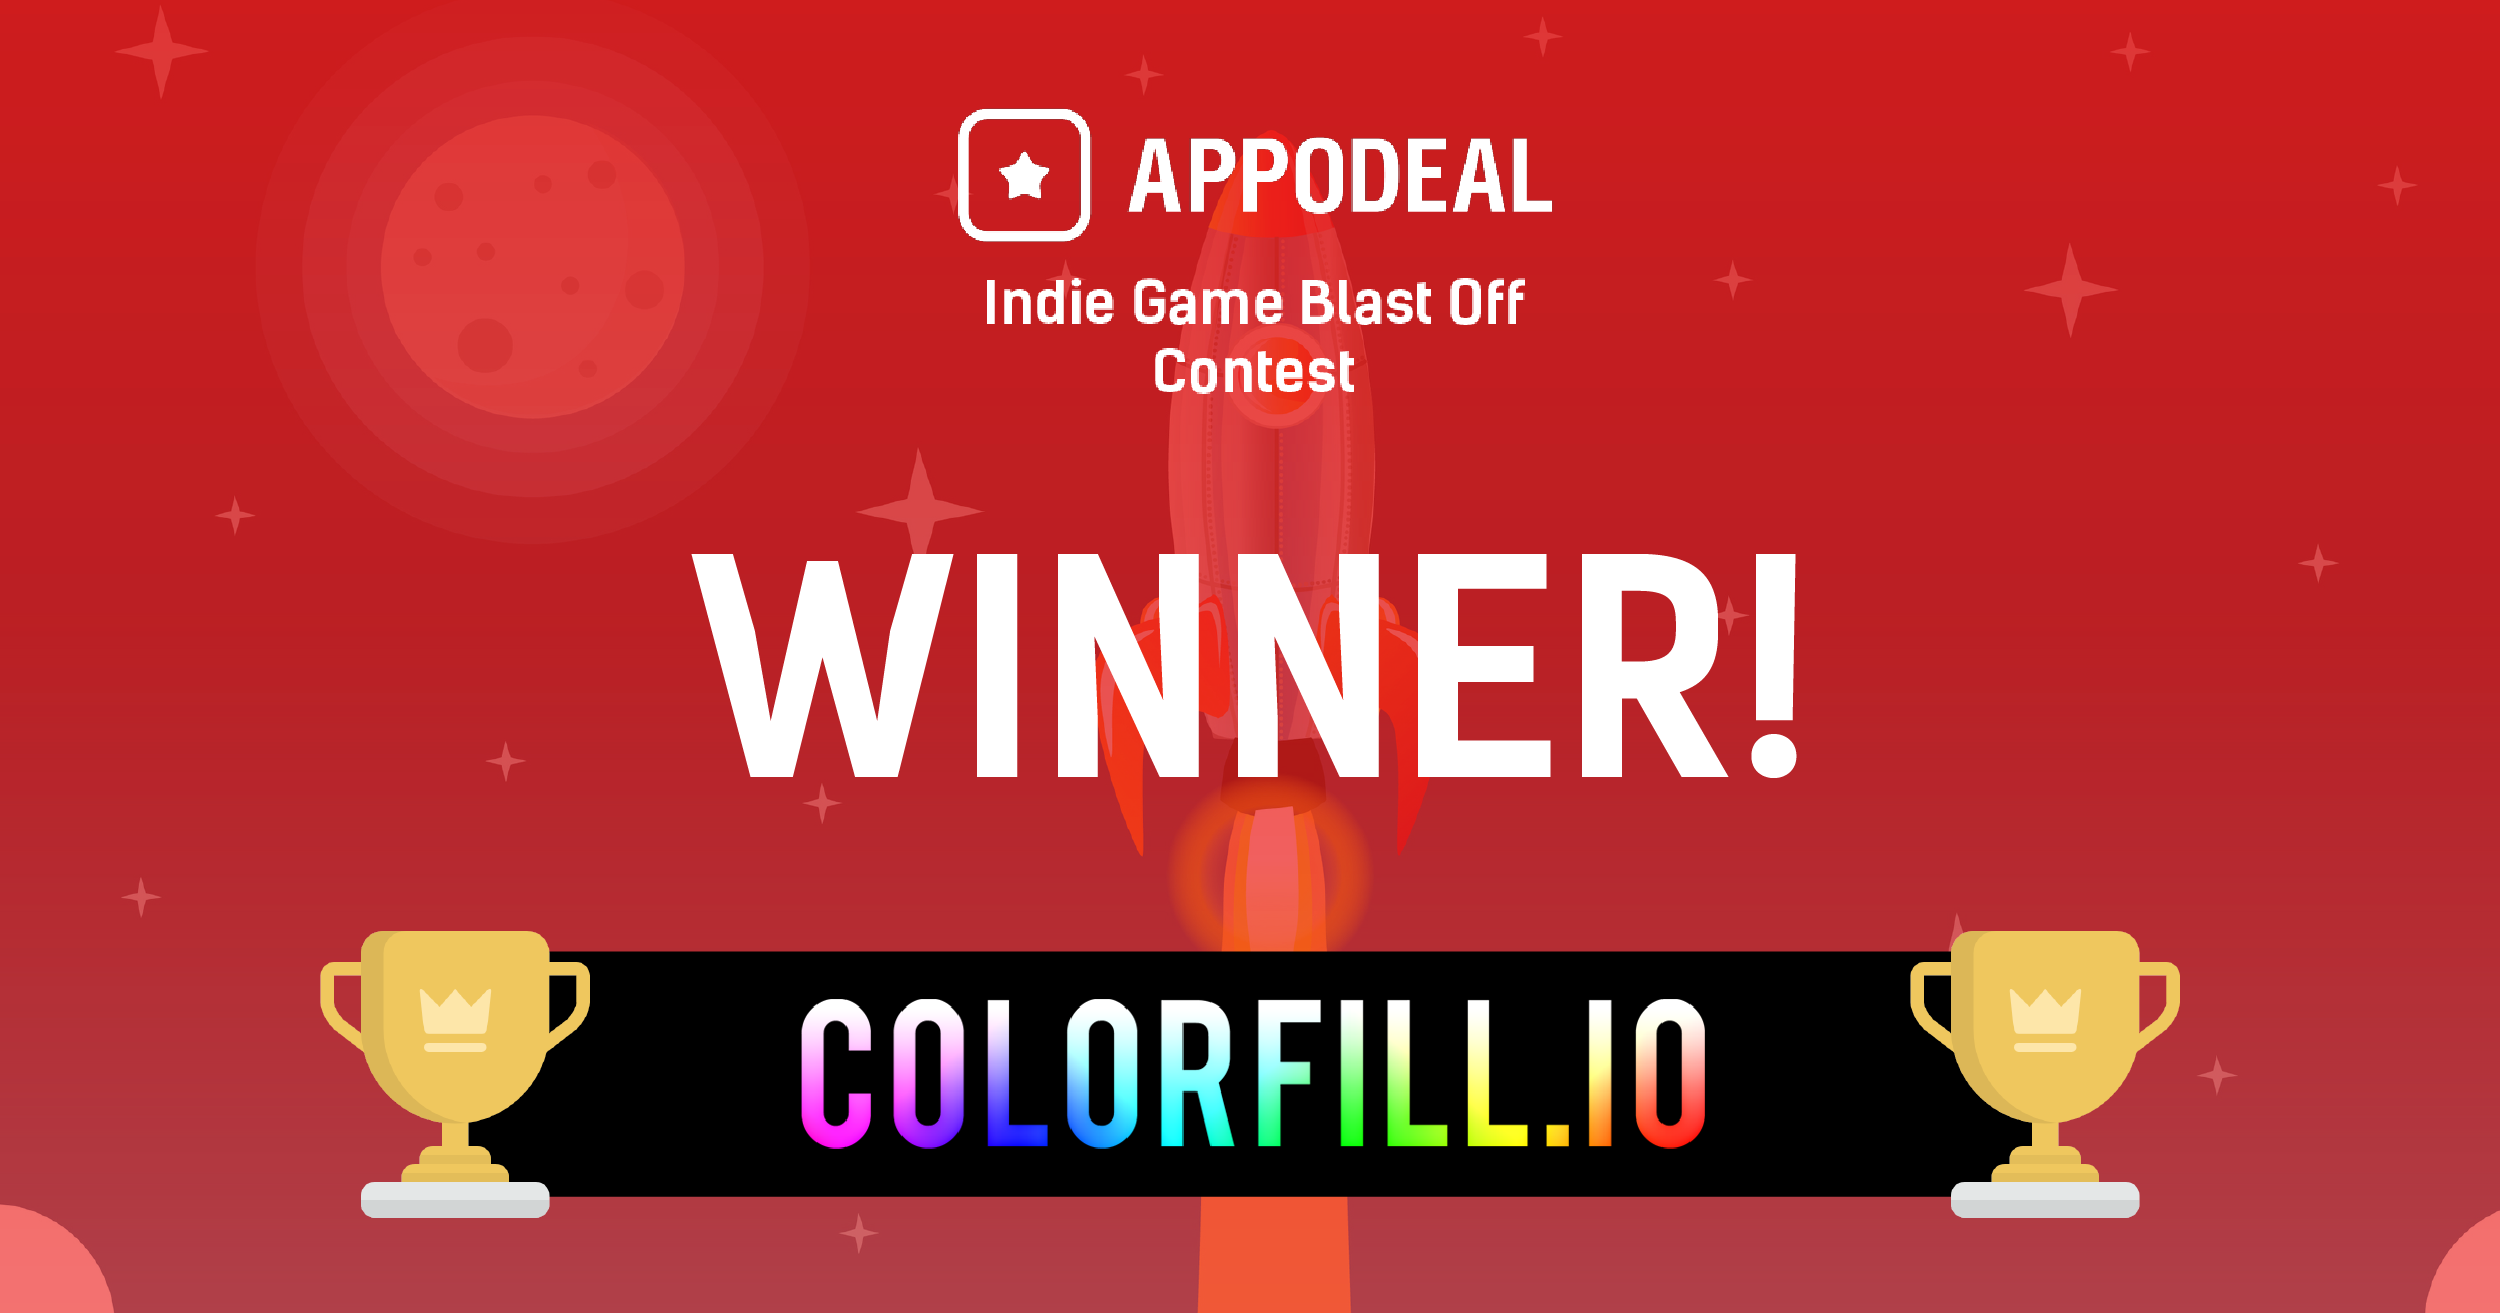 Colorfill.io Wins the Appodeal Indie Game Blast Off Contest